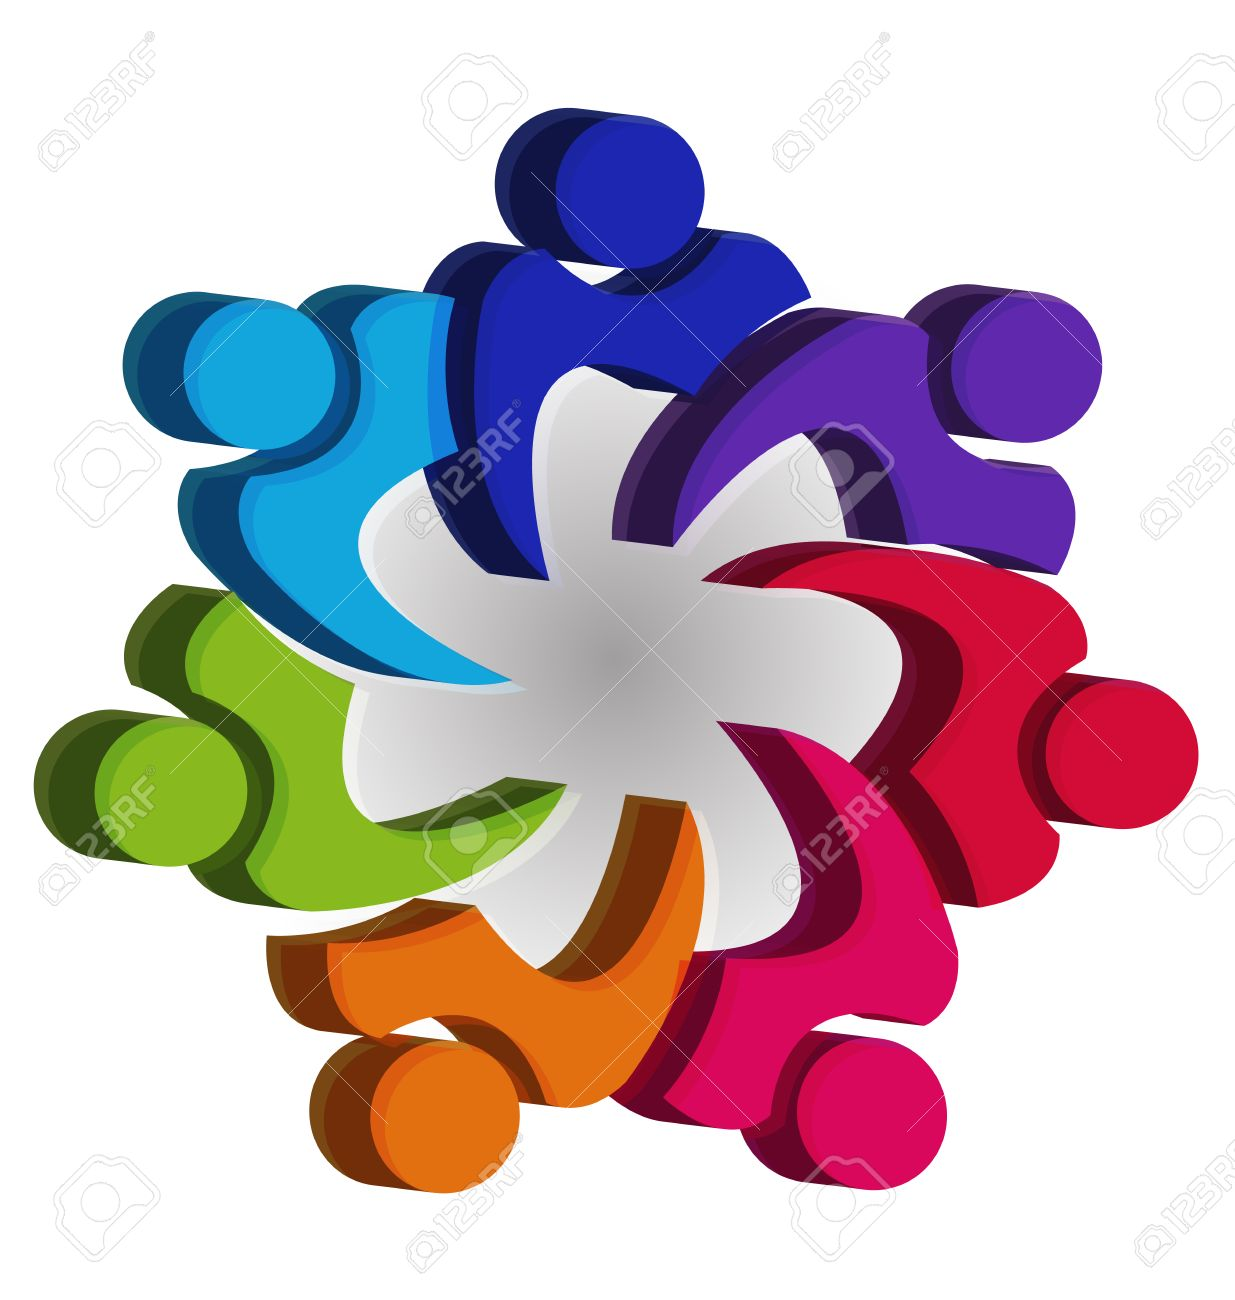 Teamwork Unity People Icon Design Template Icon Vector Royalty Free ...